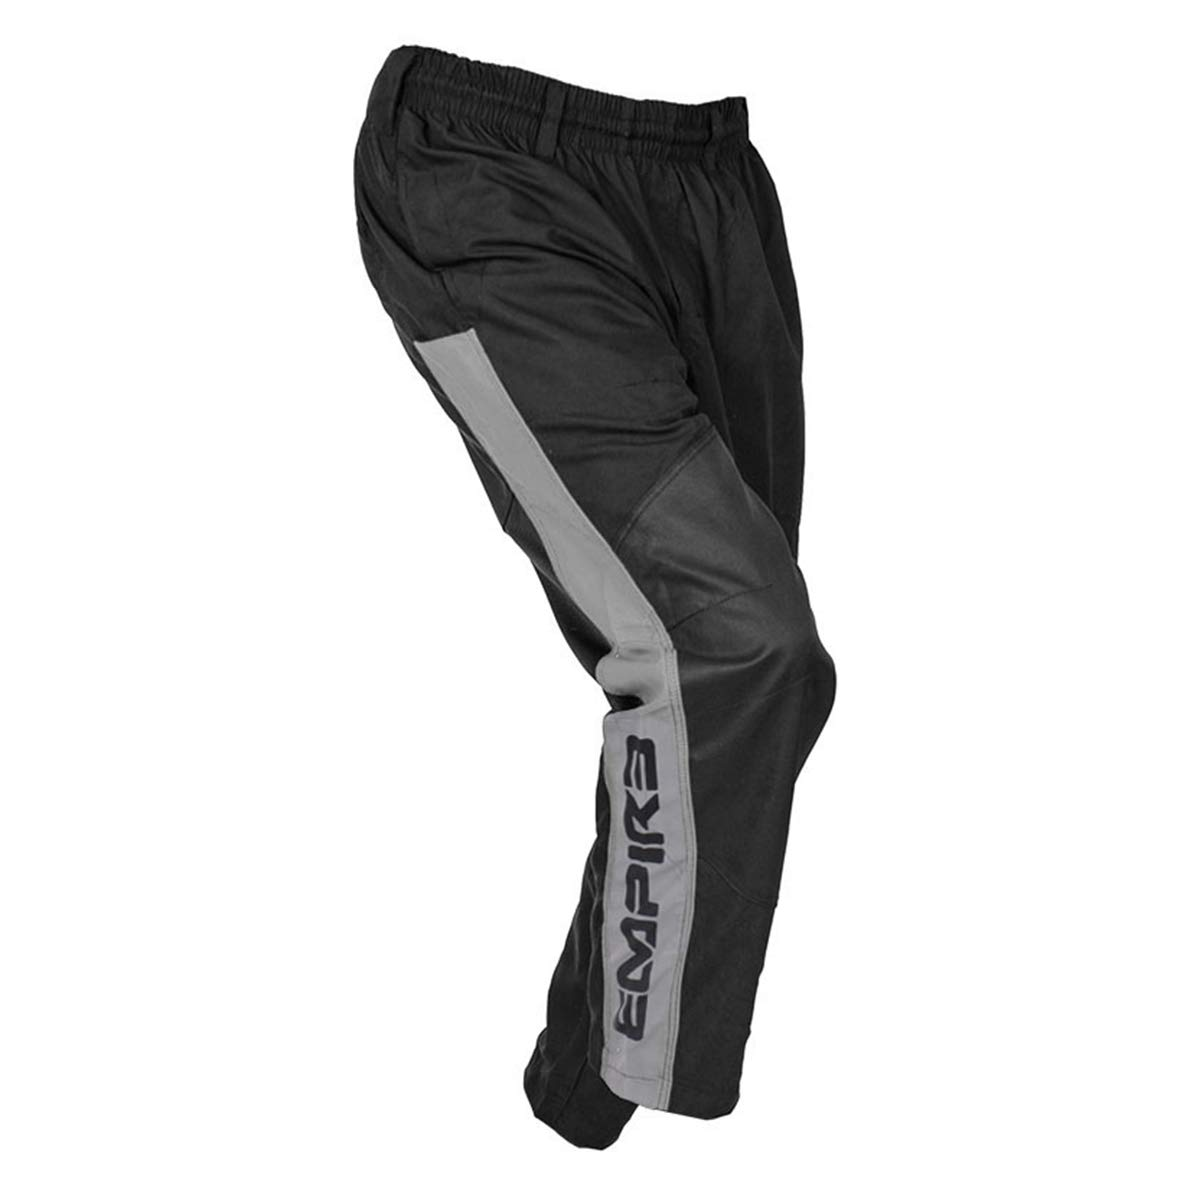 Empire Grind Paintball Pants - Black/Grey - Small